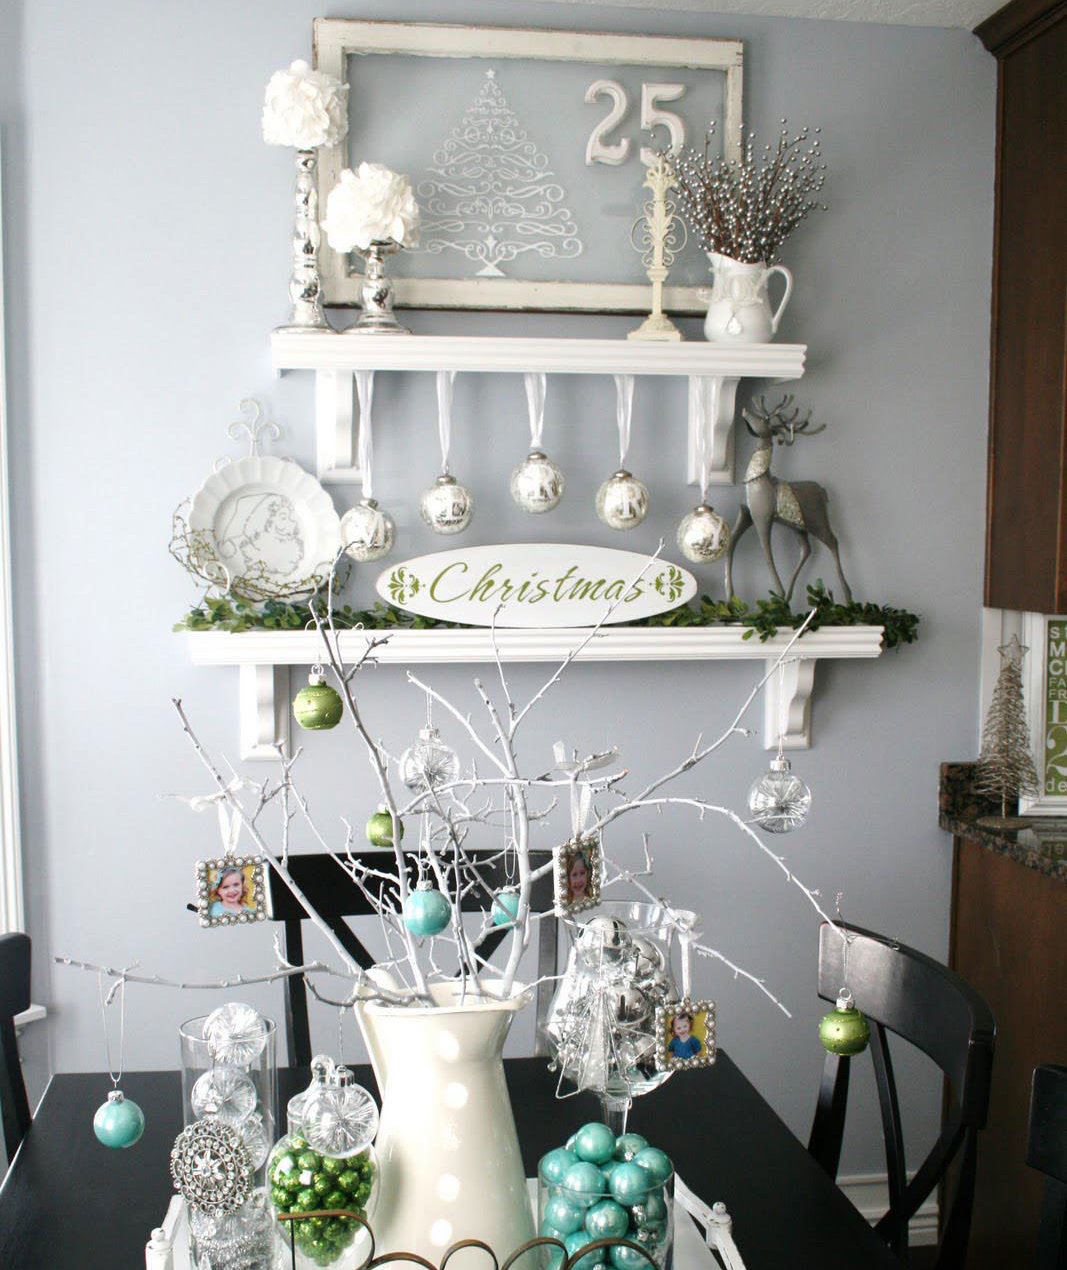 Tiered Shelves How To Decorate For Christmas Without A